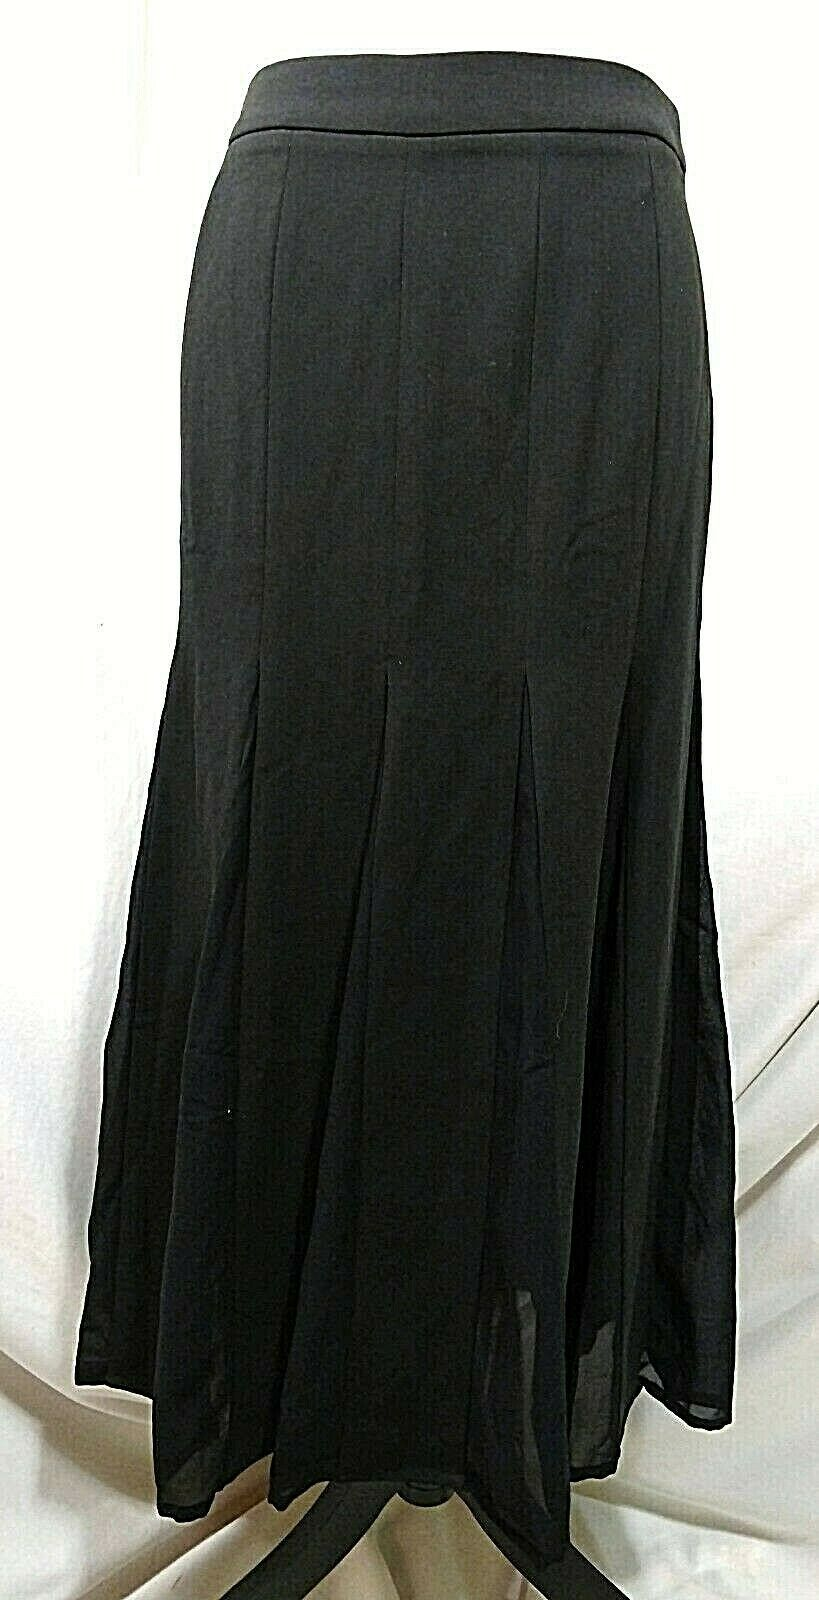 "STYLEWE Black Skirt Medium ""XL"" Flowy Fit & Flare SHANGMAN 6 8 Maxi Long Modest image 1"